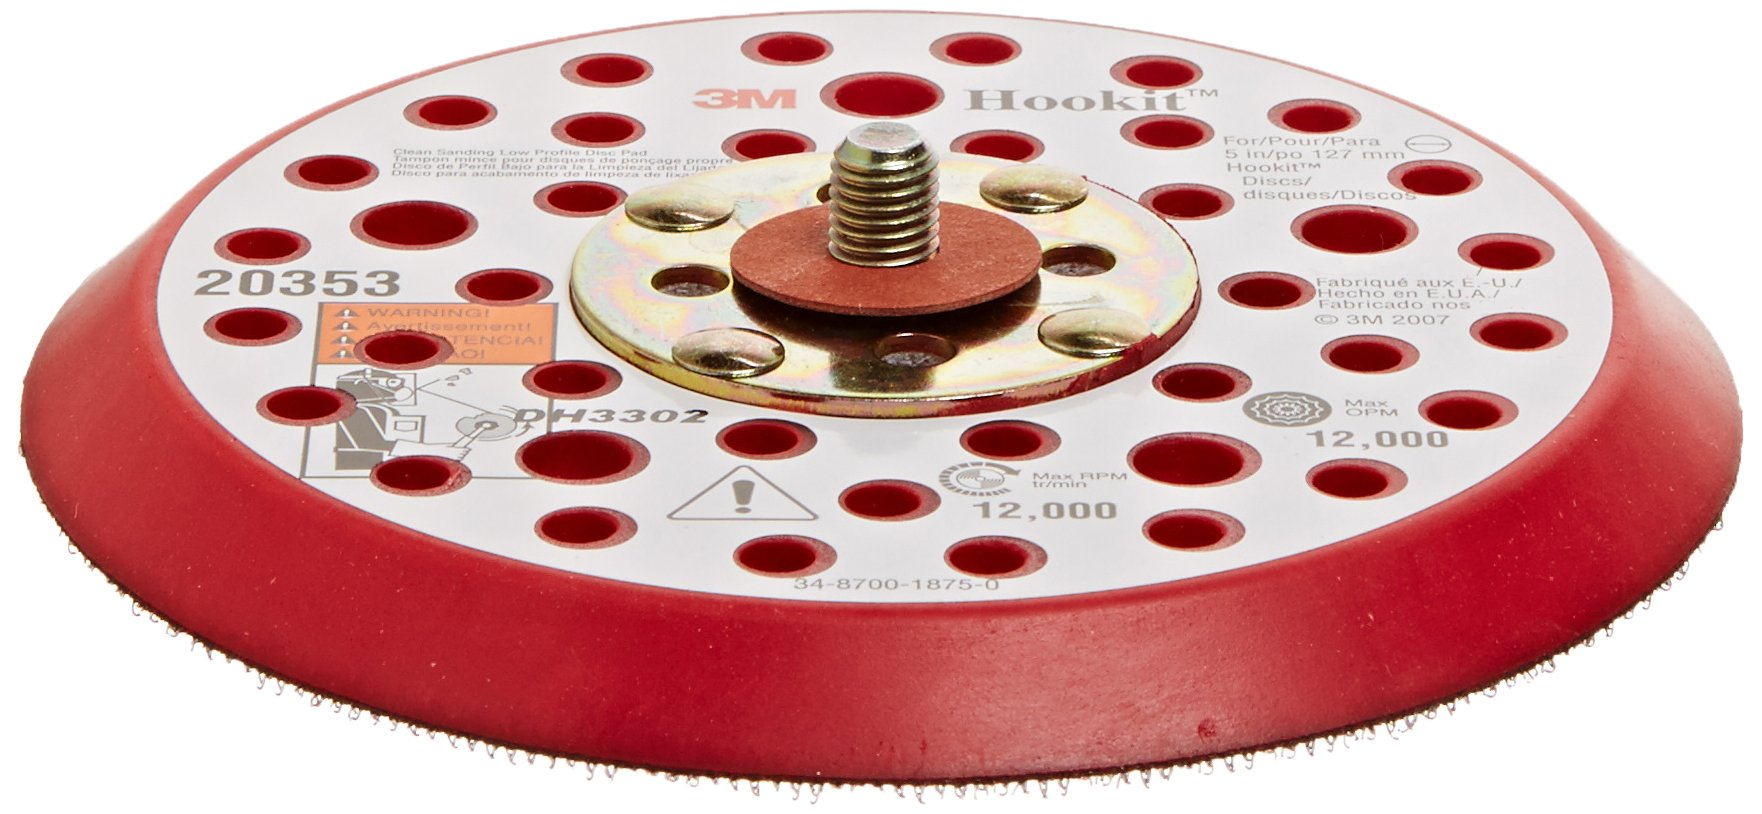 3M Hookit Clean Sanding Low Profile Disc Pad 20353, Hook and Loop Attachment, 5'' Diameter x 3/8'' Thick, 5/16''-24 External Thread, 44 Holes, Red